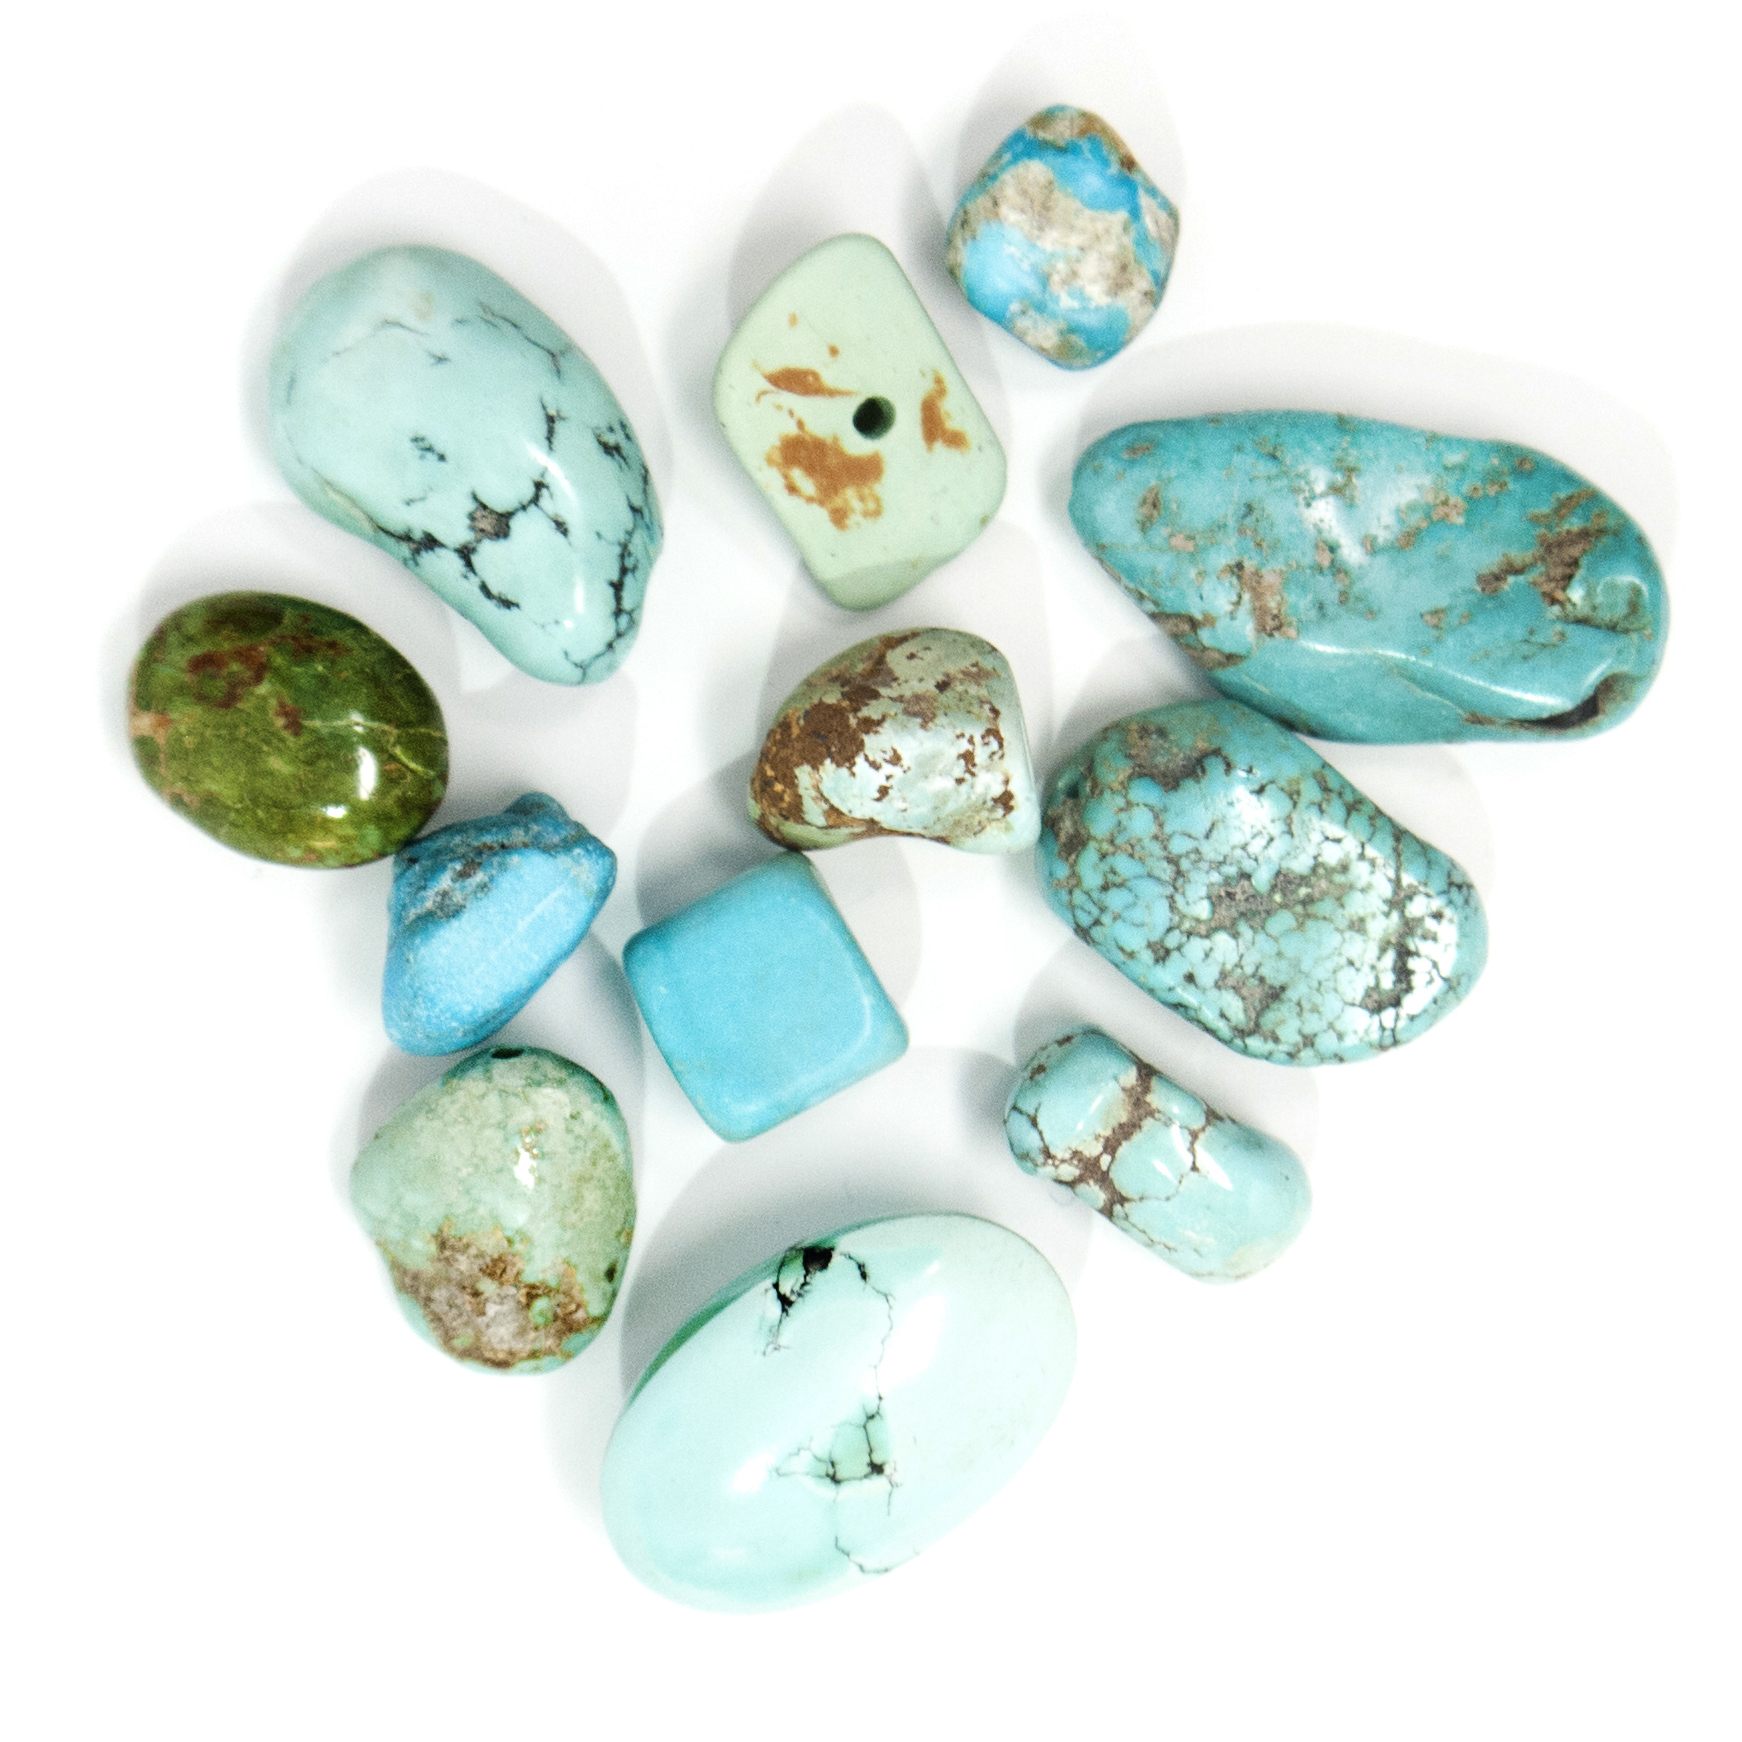 T U R Q U O I S E - Our stone with a Western vibe - Turquoise is famous for its brilliant opaque blue/green color.  Known for its protective powers,Turquoise is one of the oldest stones used historically as a talisman by warriors, shamans, and kings. For this reason, Turquoise appeared in Ancient Egyptian burial ceremonies to guard the passage of the dead.  Much of our Turquoise is mined in the U.S., but it is also found in Mexico, Iran, Chile, China, and Tibet.